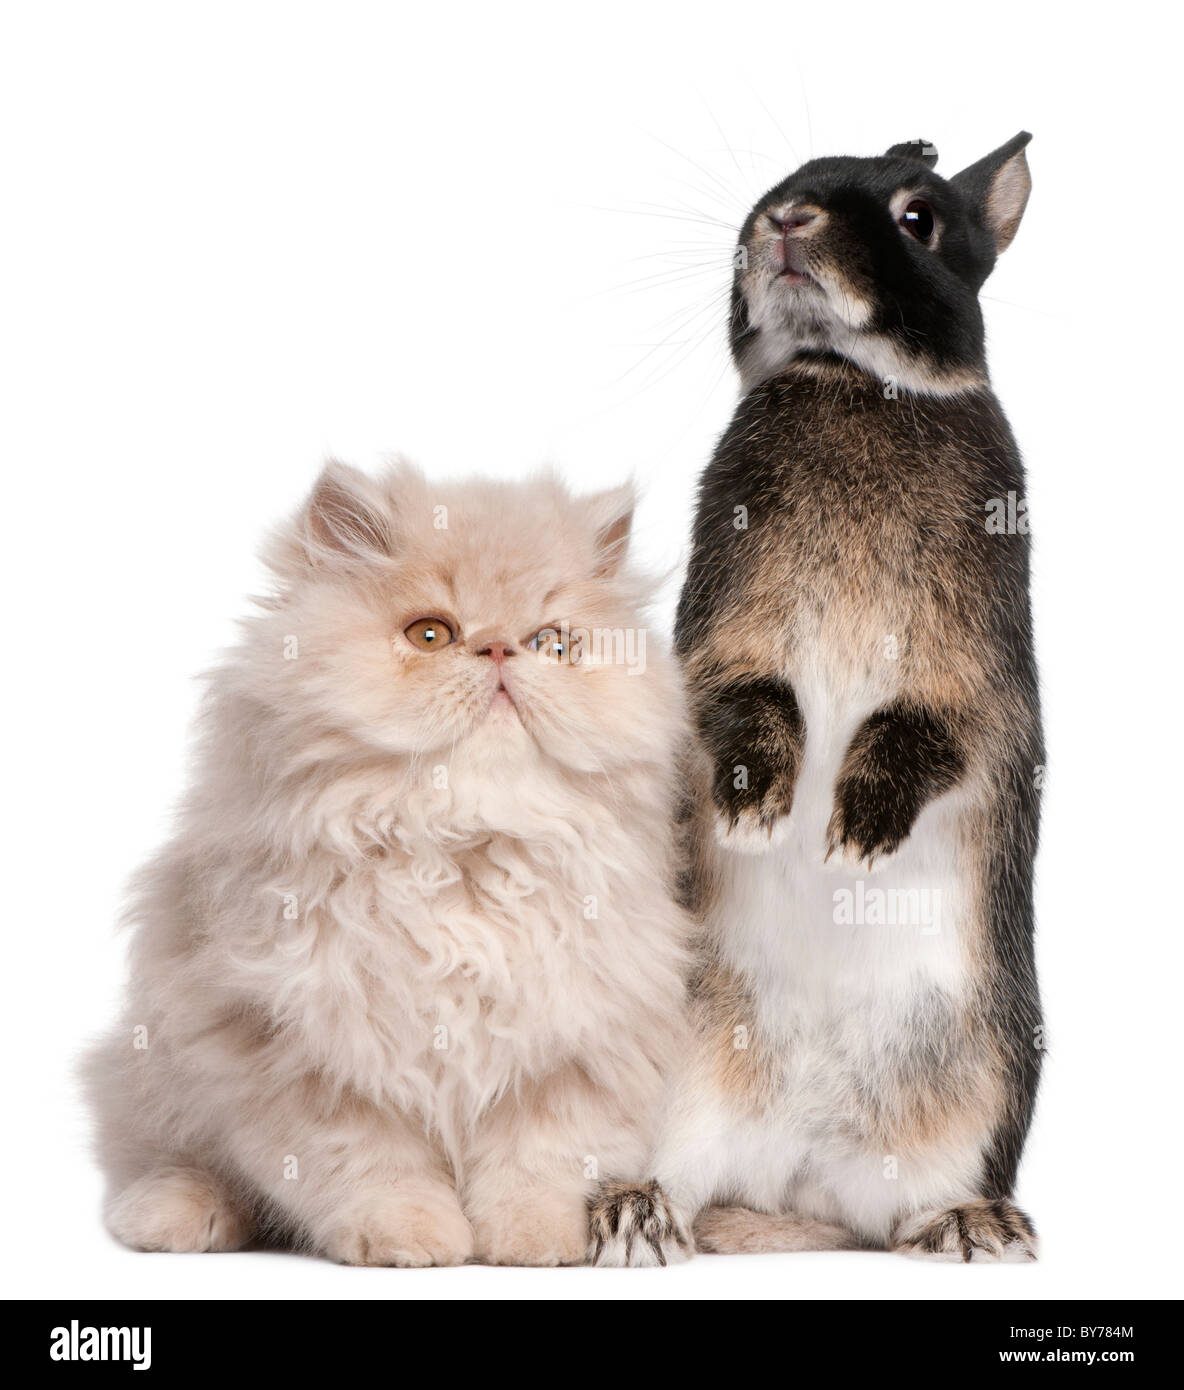 Jeune chat persan et rabbit in front of white background Photo Stock